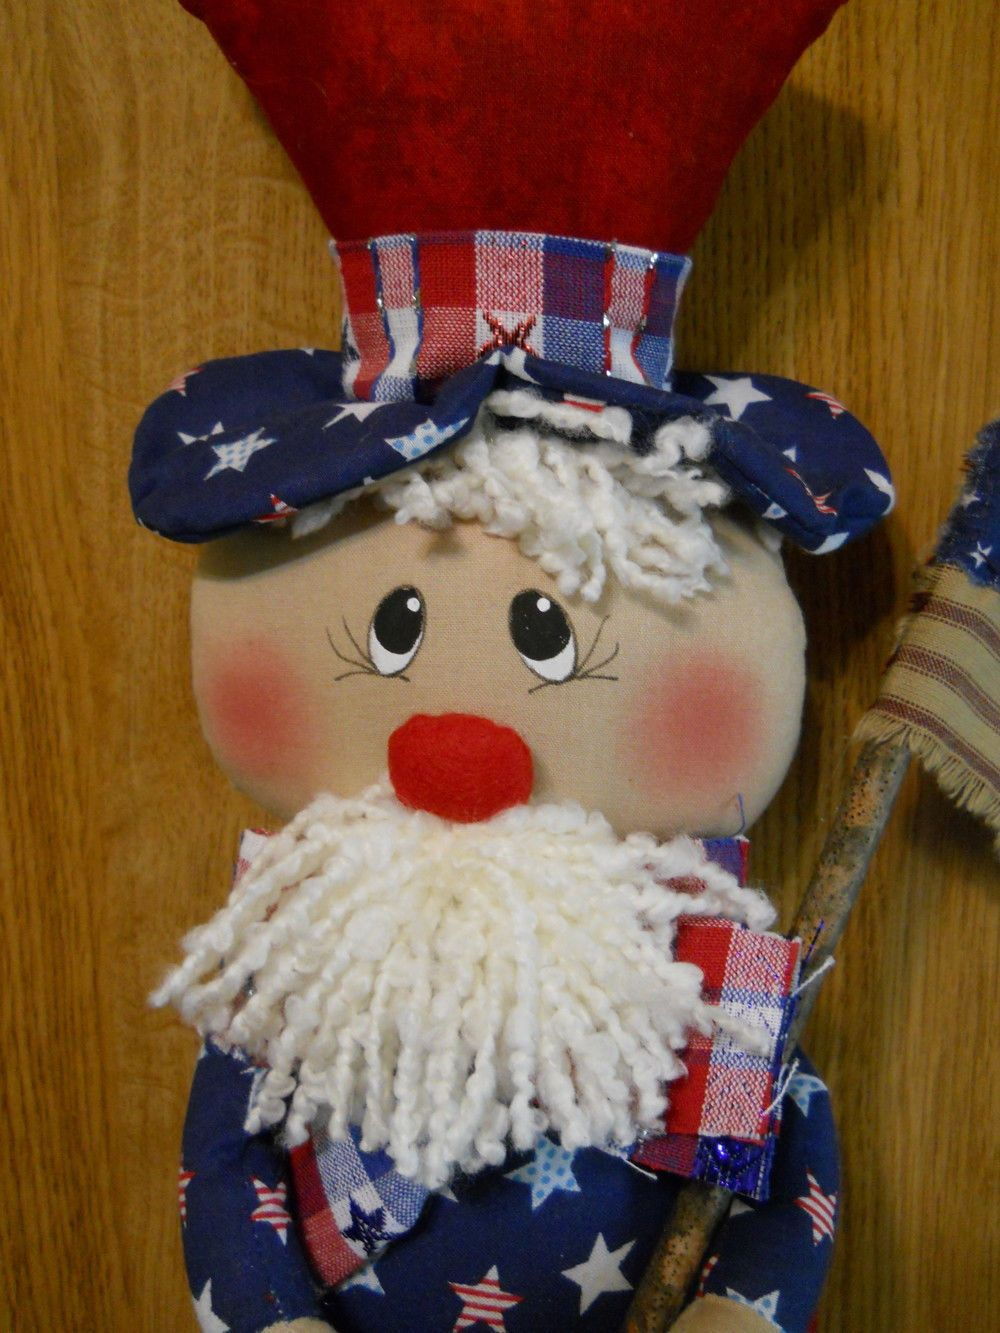 PRIMITIVE HANDCRAFTED HANGING WALL OR DOOR UNCLE SAM DOLL picclick.com